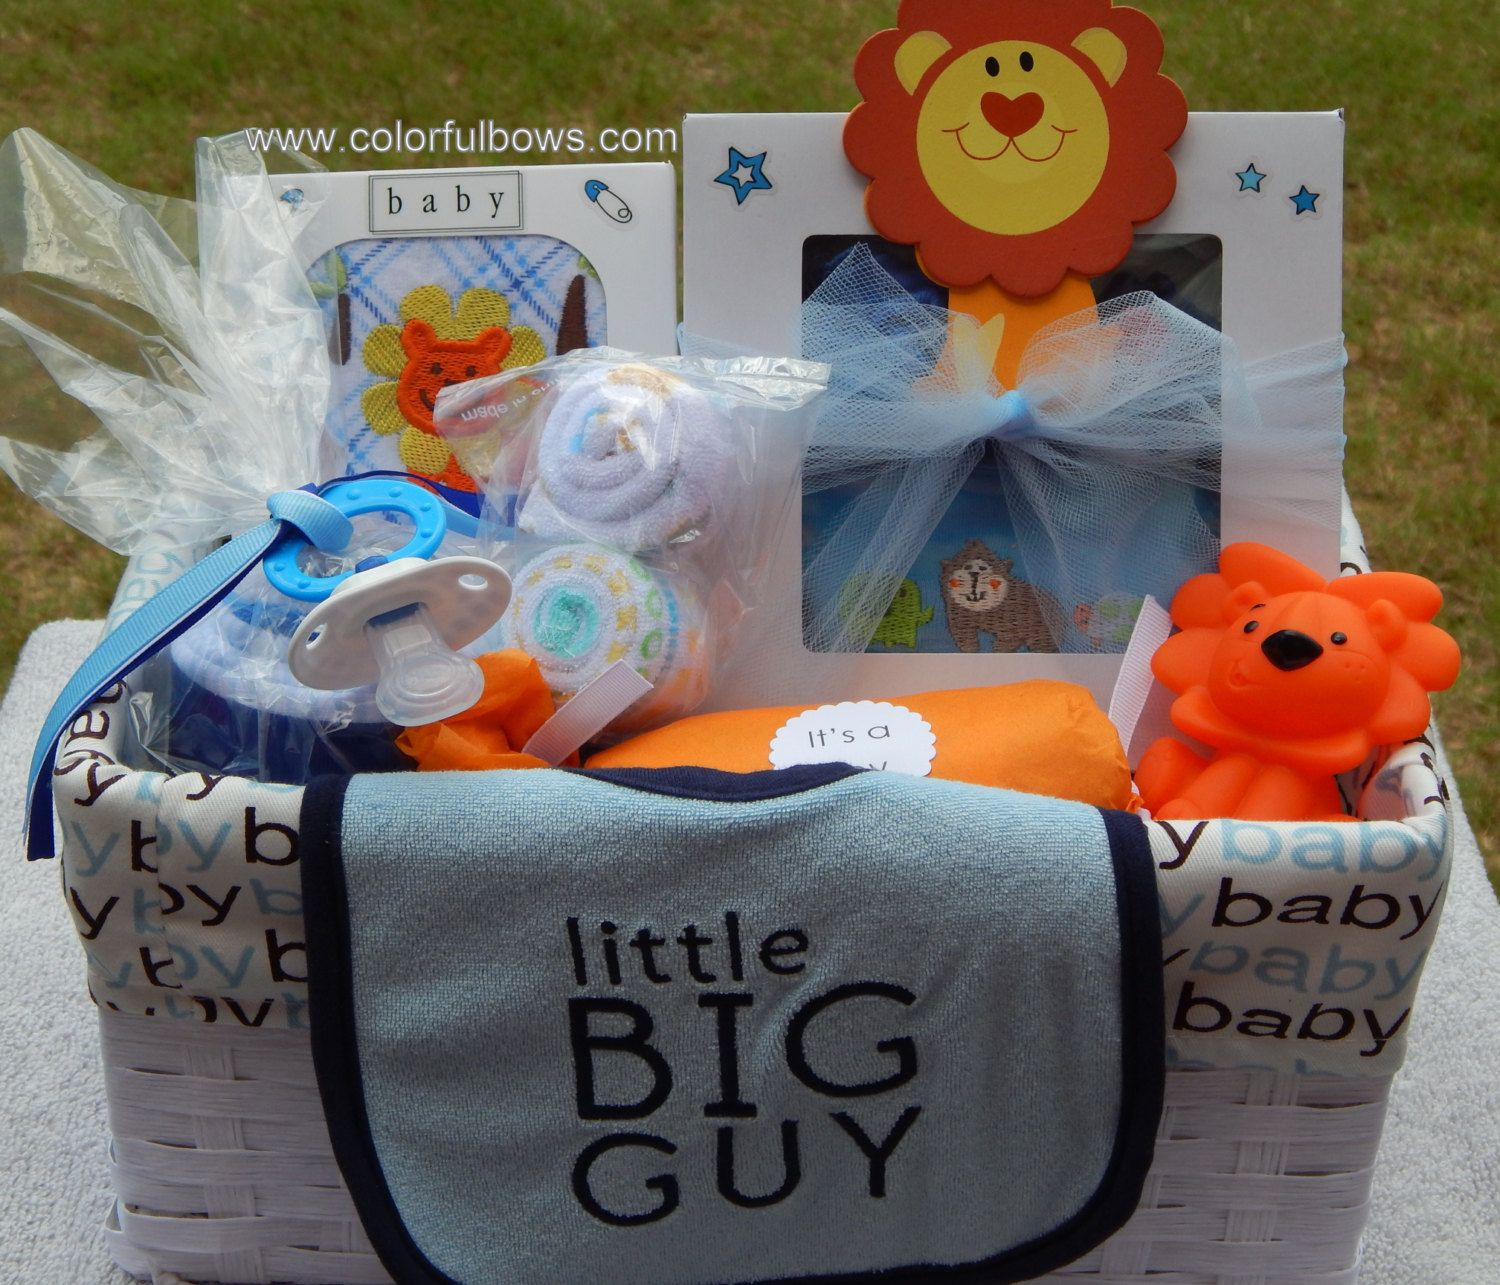 Premium little big guy baby boy gift basket ready to ship lion a lion baby gift basket with baby items that are just adorable negle Gallery